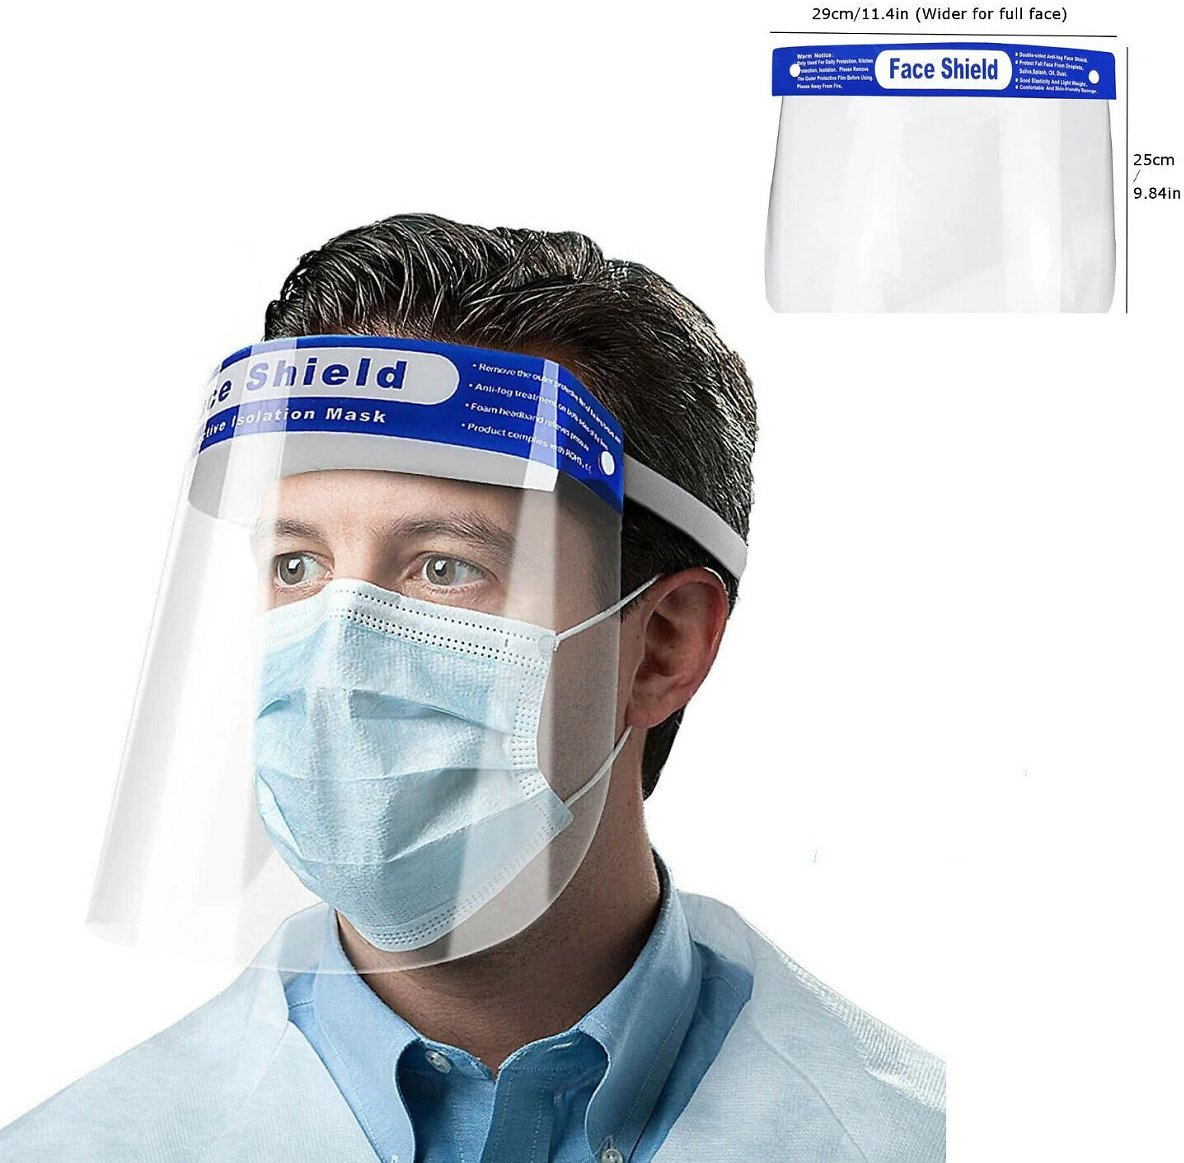 [US$5.29 52% OFF] Anti-fog Transparent Plastic Full Face Shield Protective Face Mask Anti-Spitting Splash Facial Cover With Forehead Cushion Fishing & Hunting from Sports & Outdoor On Banggood.com